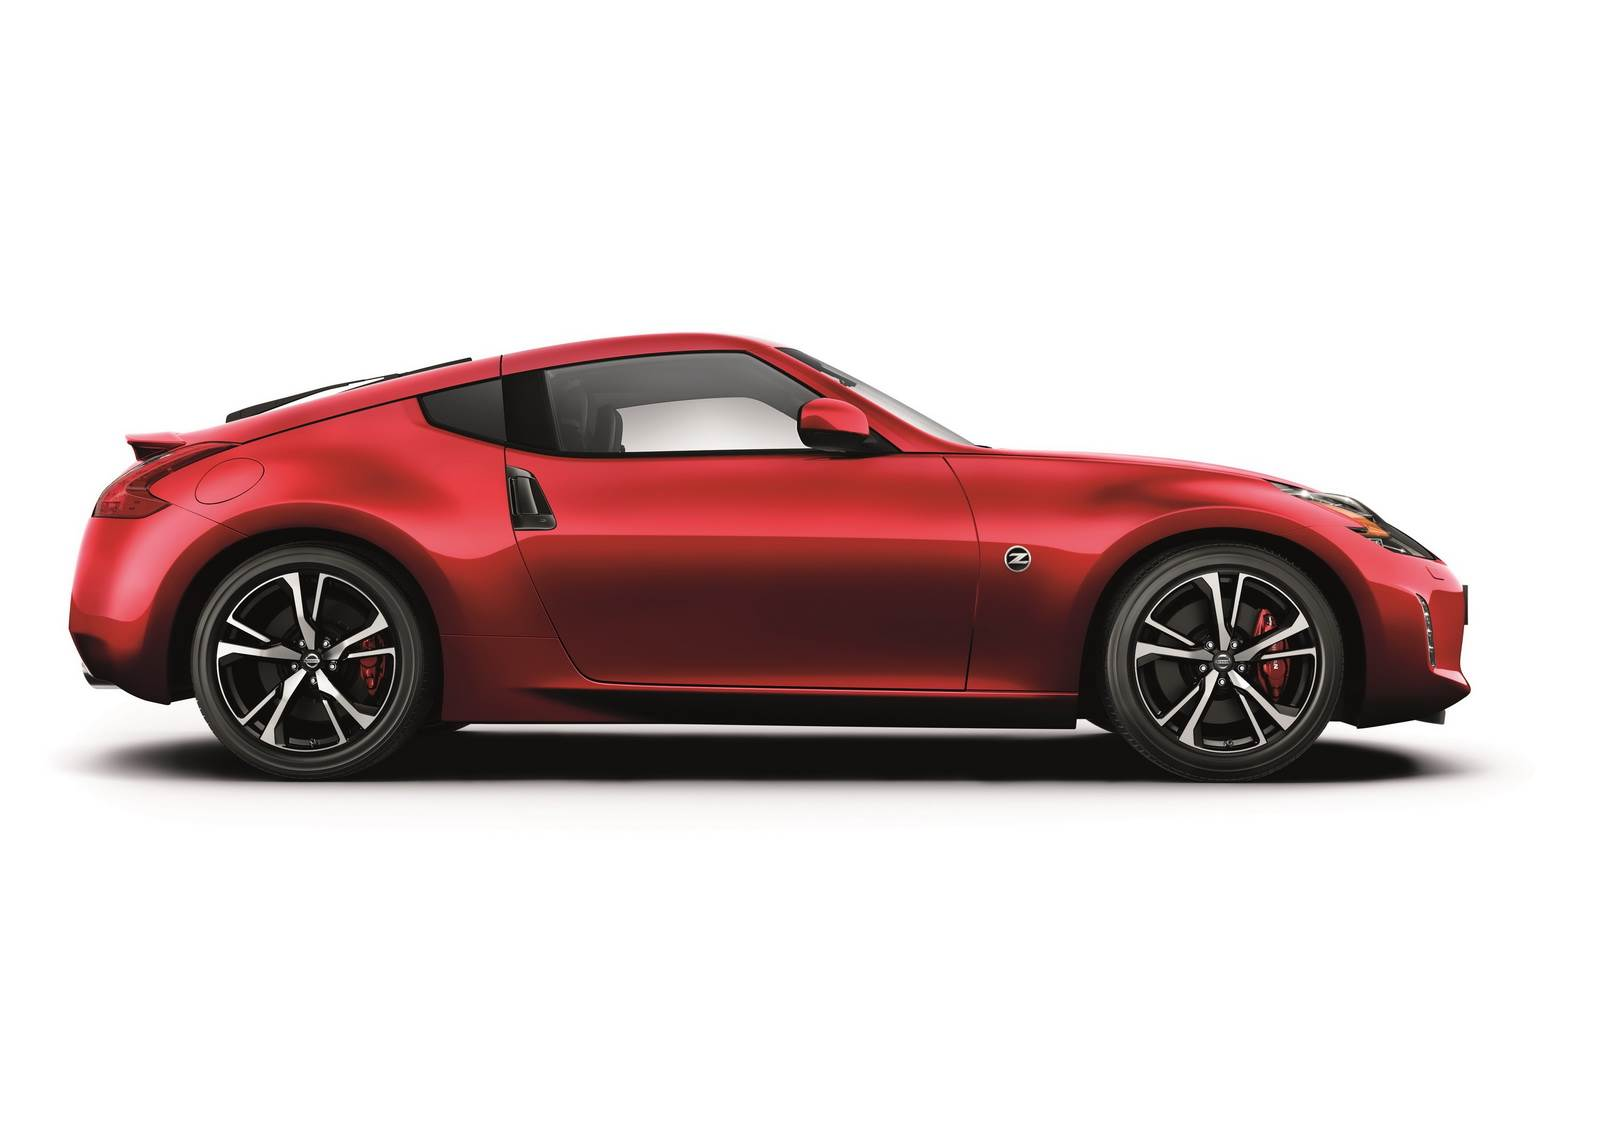 New Nissan Z sportscar to create new V6 Nismo model